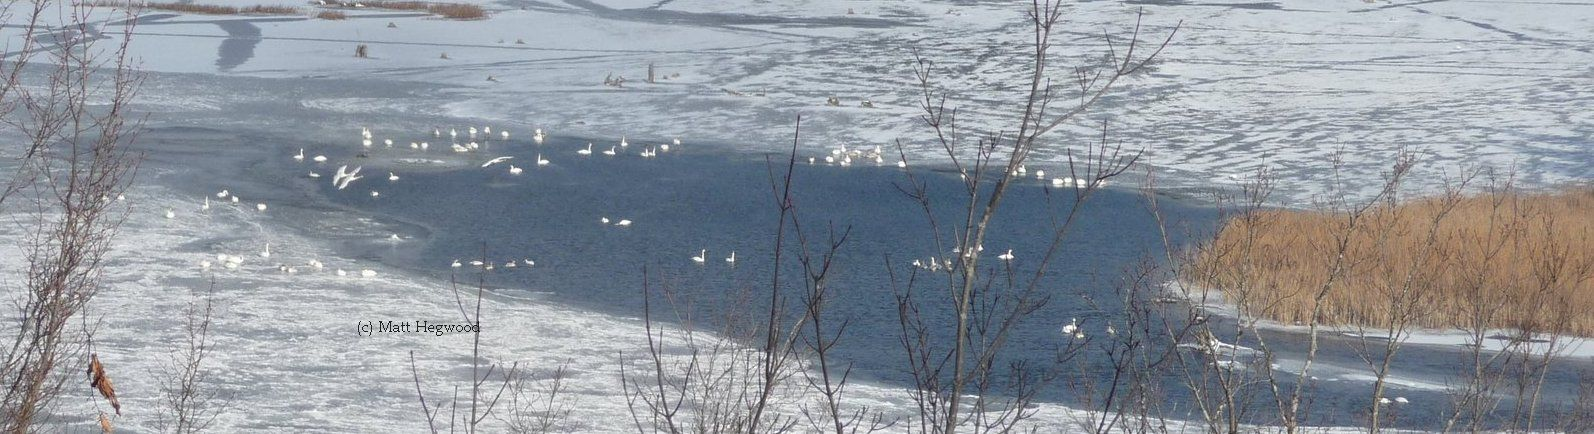 Check out our United States Swan links for great information about Trumpeter Swans